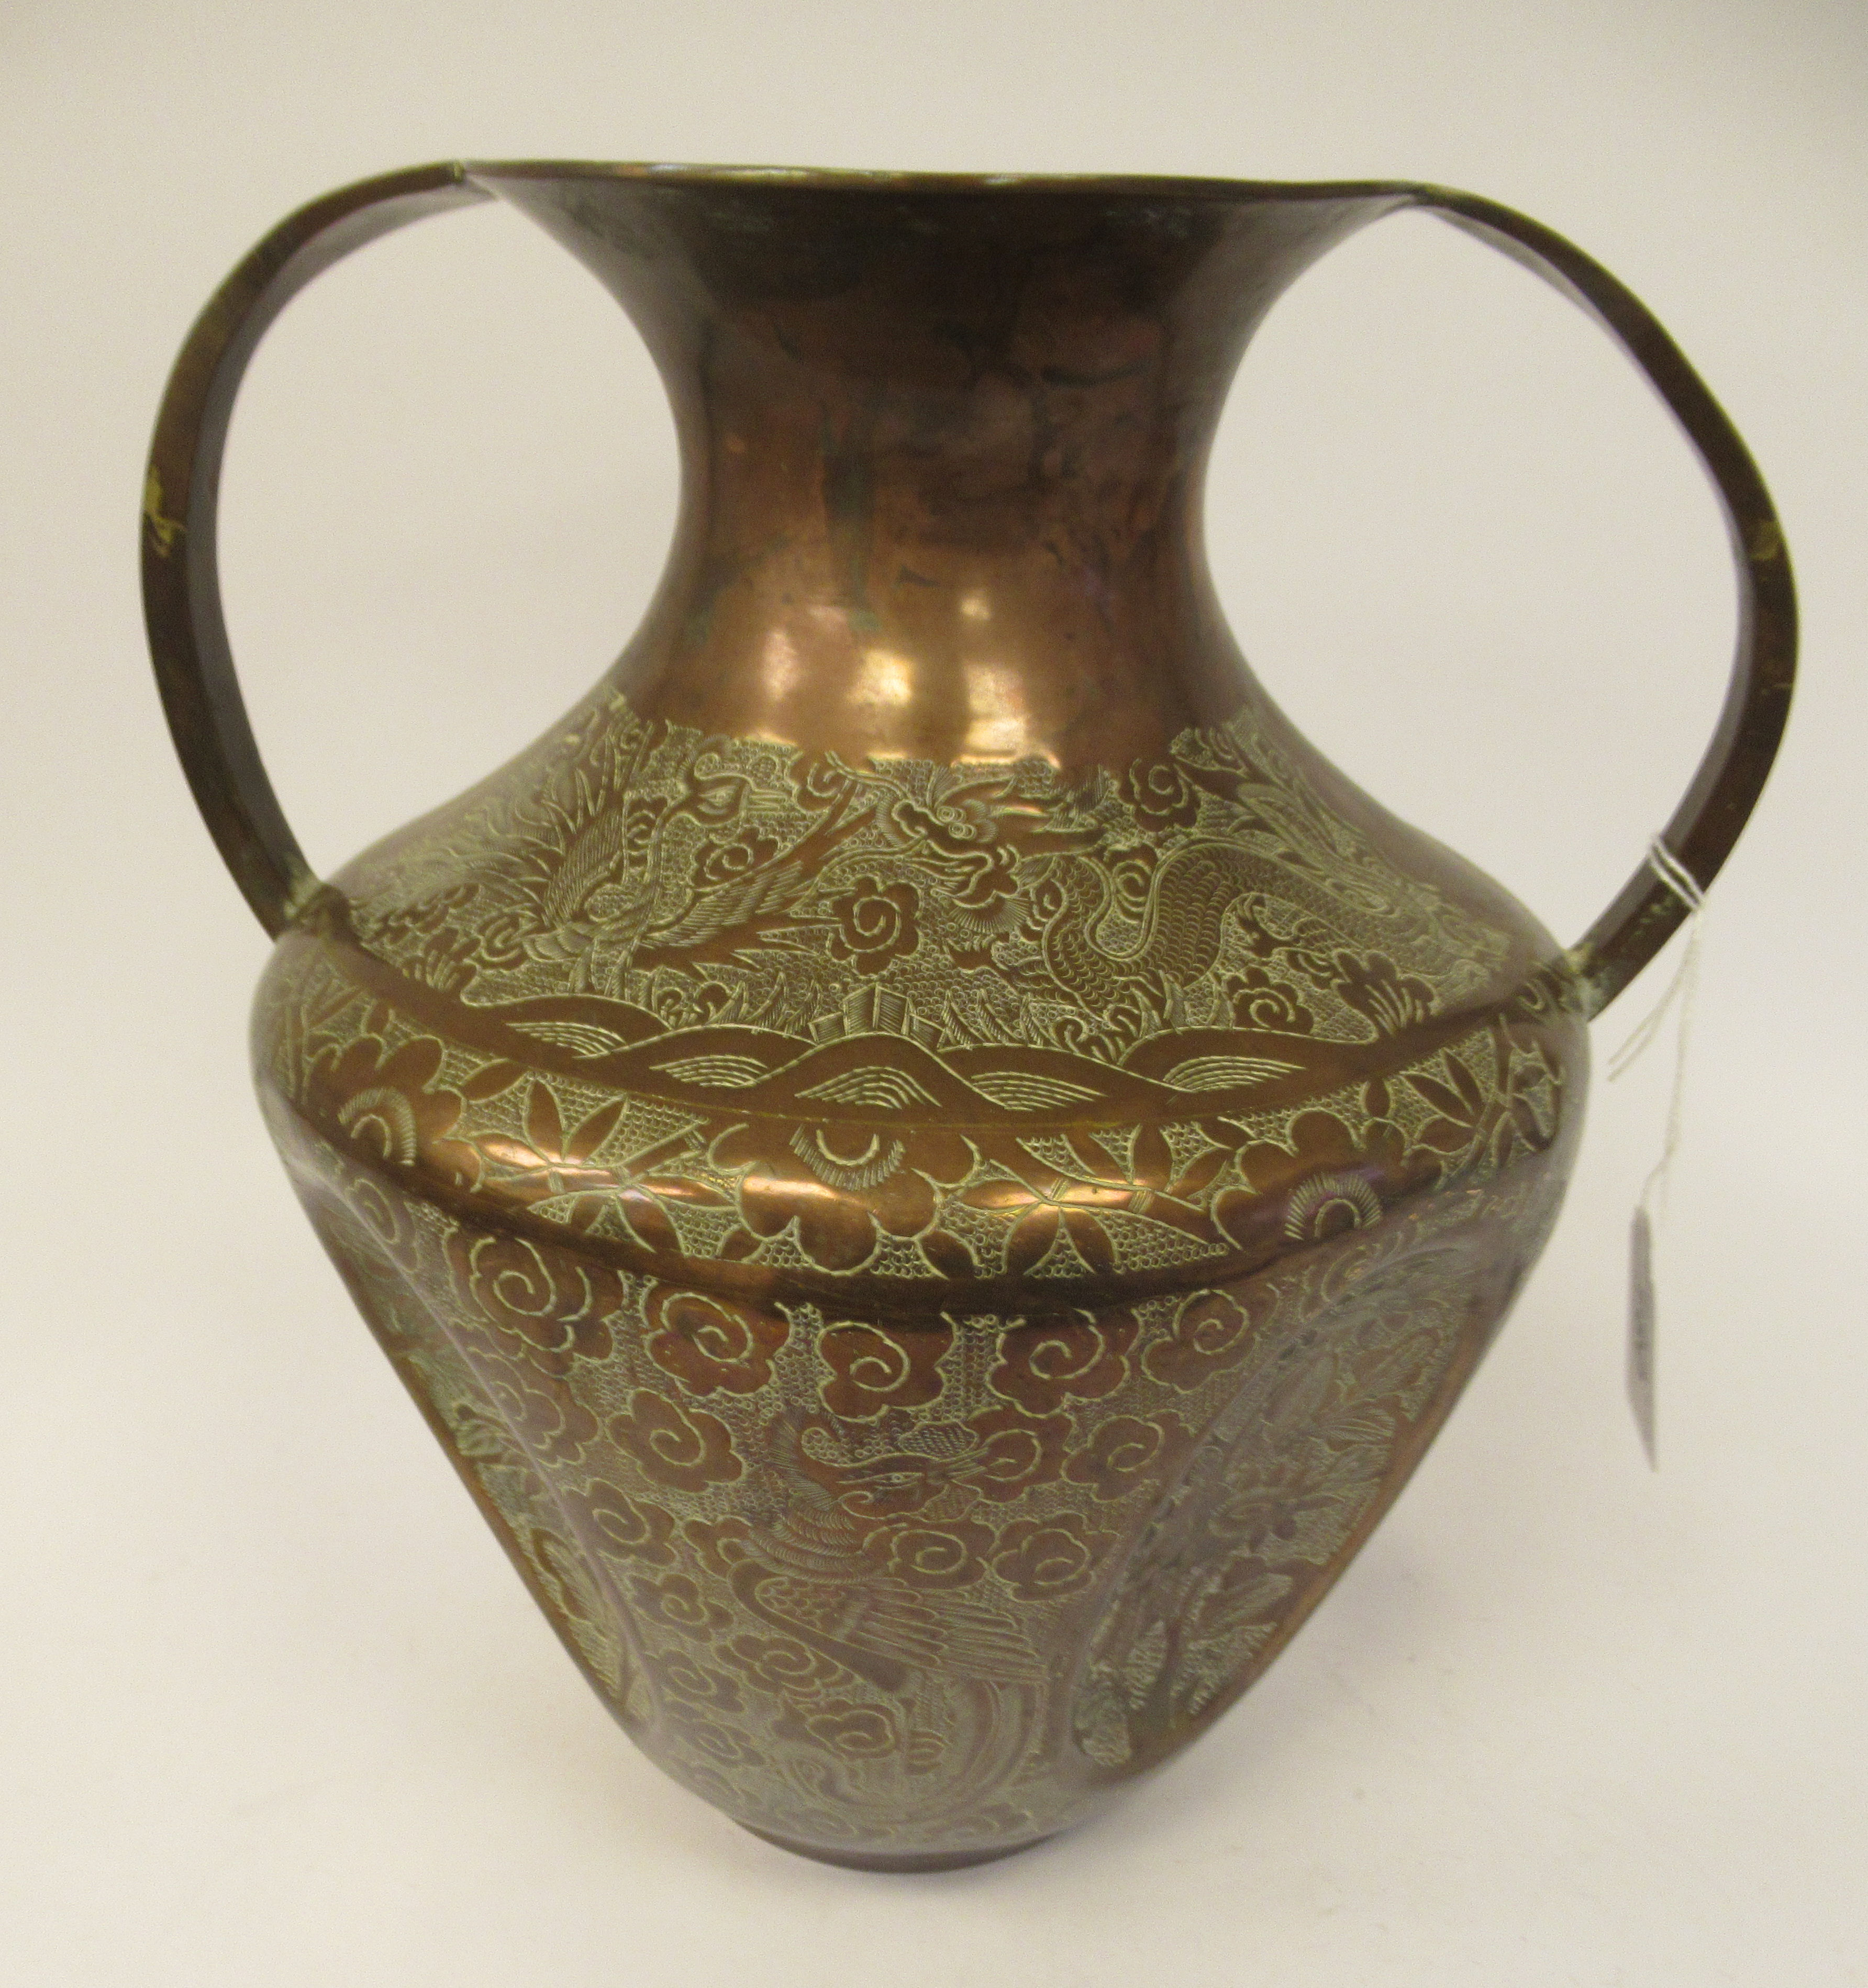 A late 19th/early 20thC Chinese copper vase of shouldered and dimpled baluster form, having a narrow